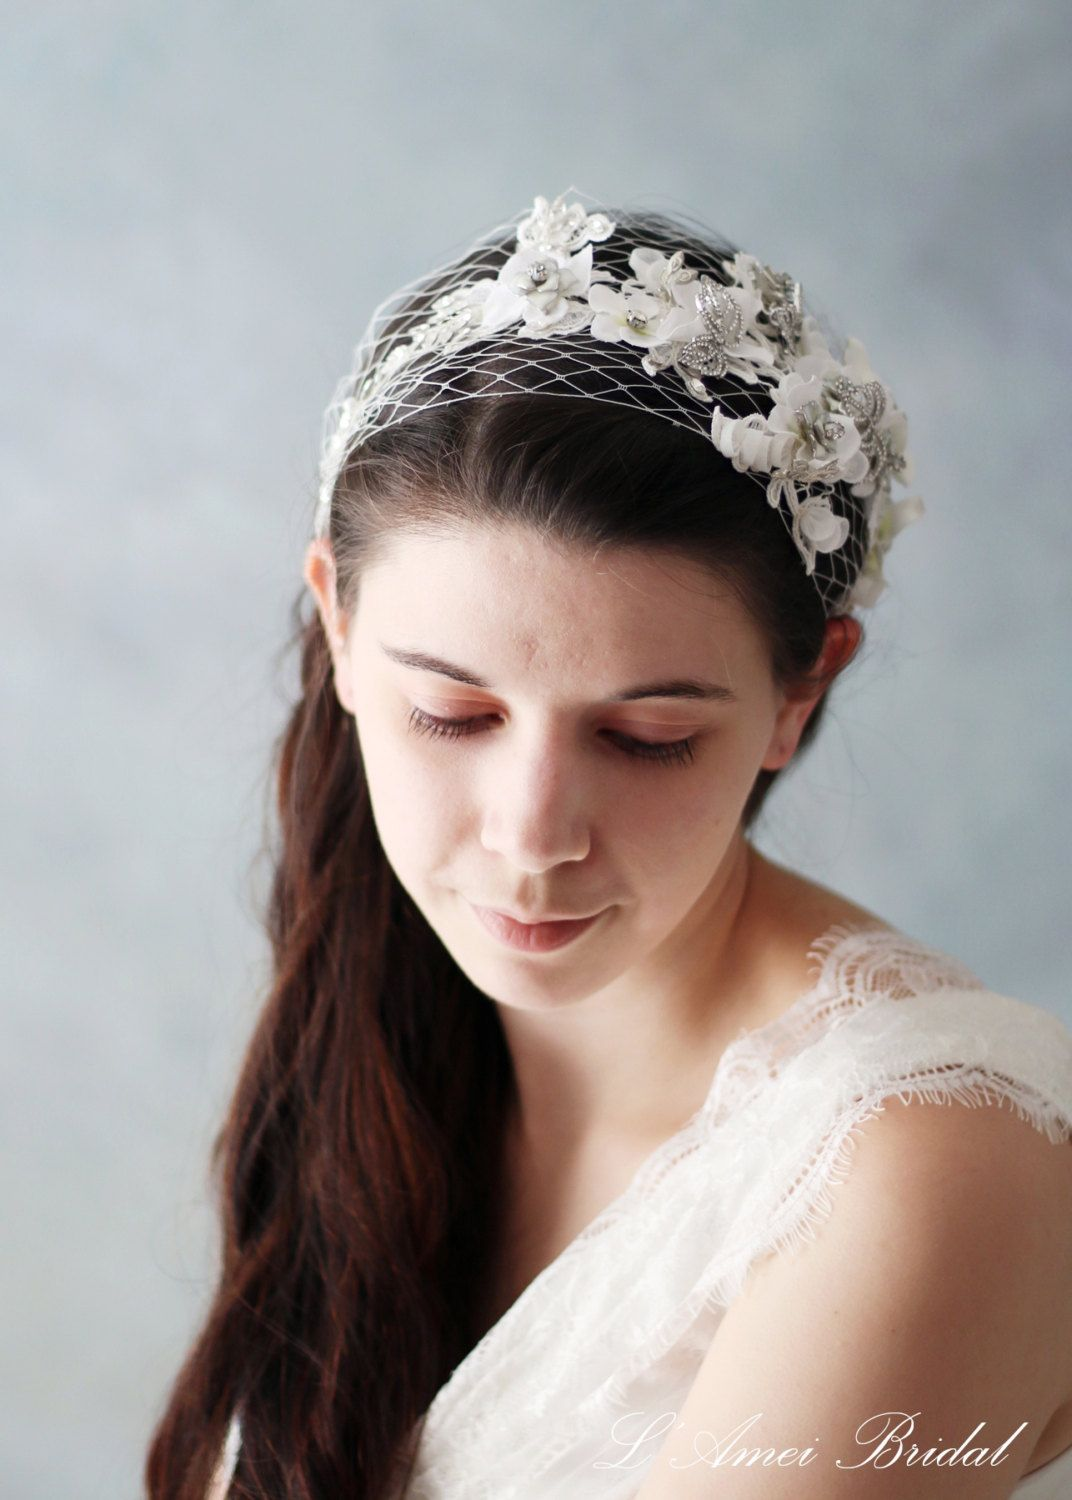 wedding hair band with small white flowers accented with